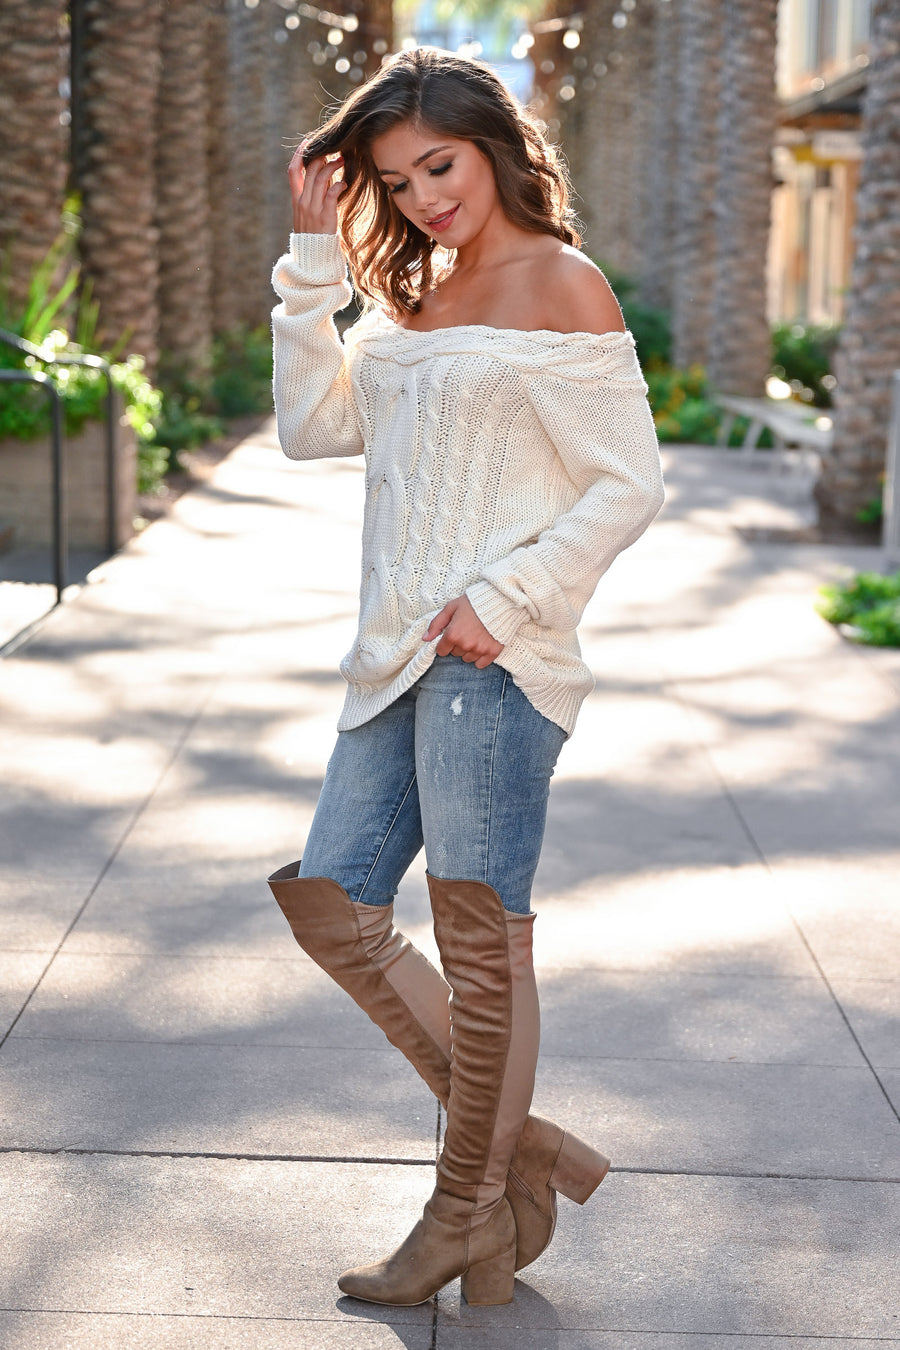 CBRAND Find Your Way Sweater - Cream womens trendy off-the-shoulder sweater closet candy front; Model: Hannah Sluss